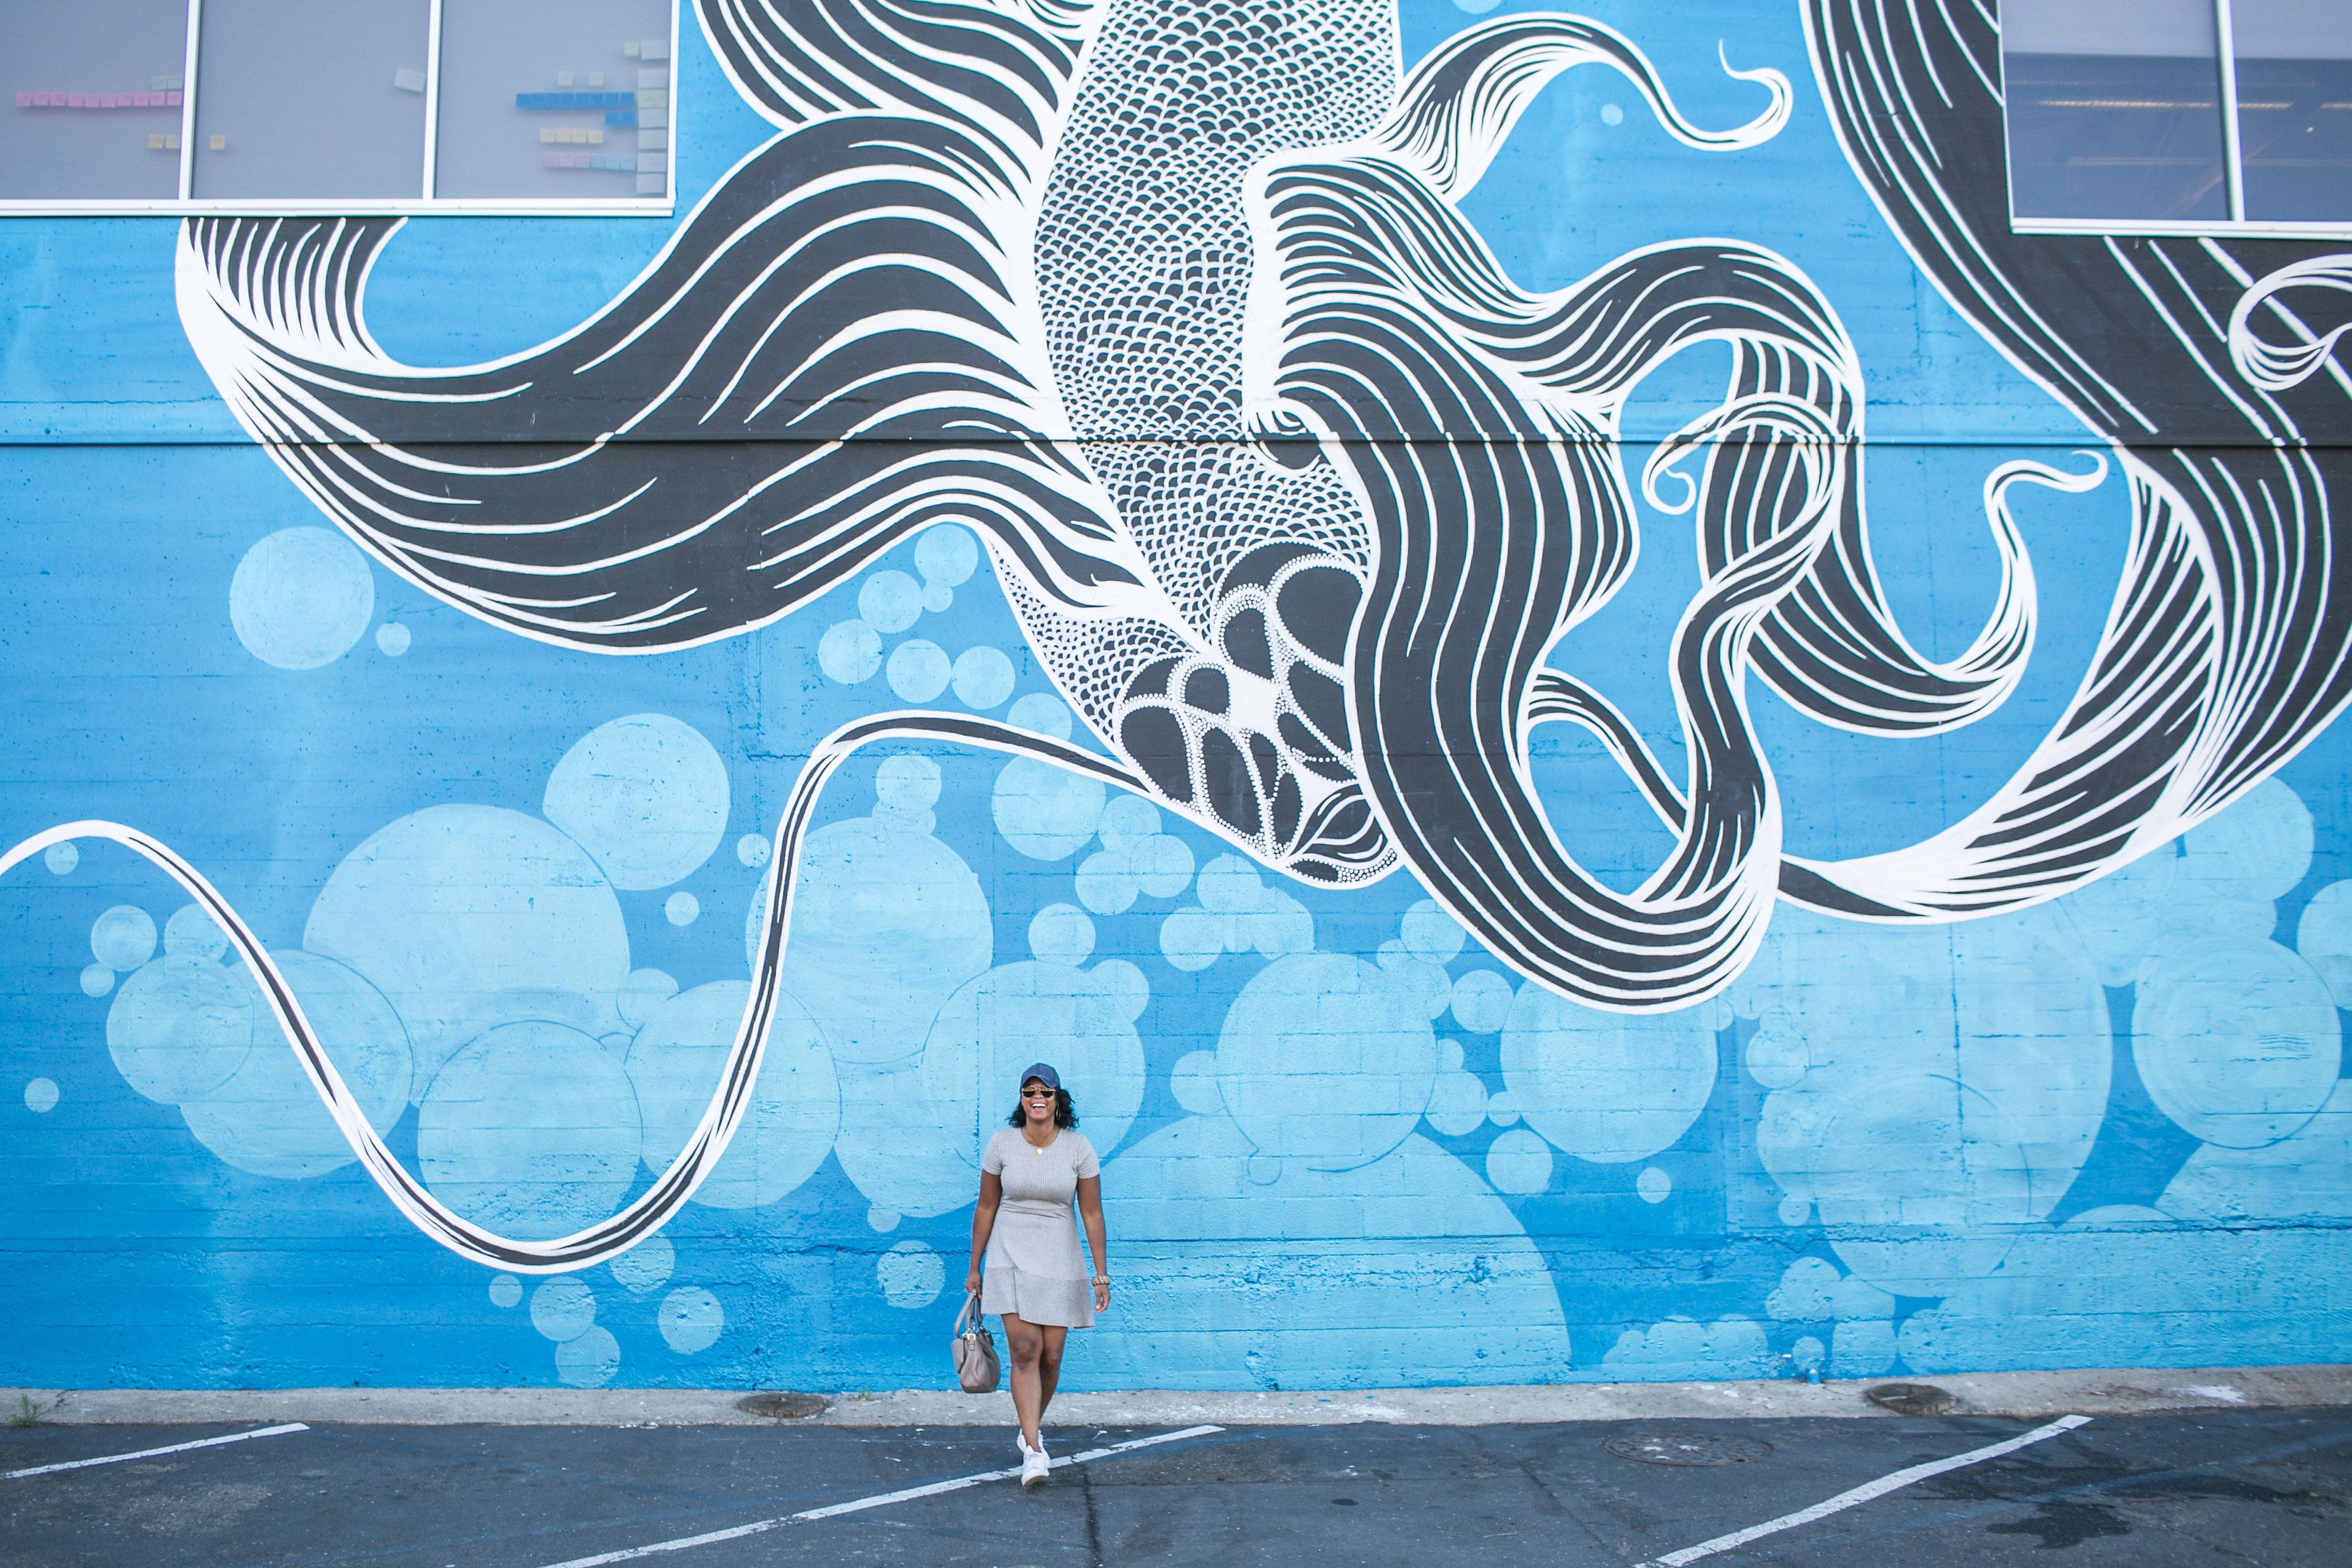 Sacramento Mural Guide Best Instagrammable Spots In Sacramento Mural Guide Mural California Travel